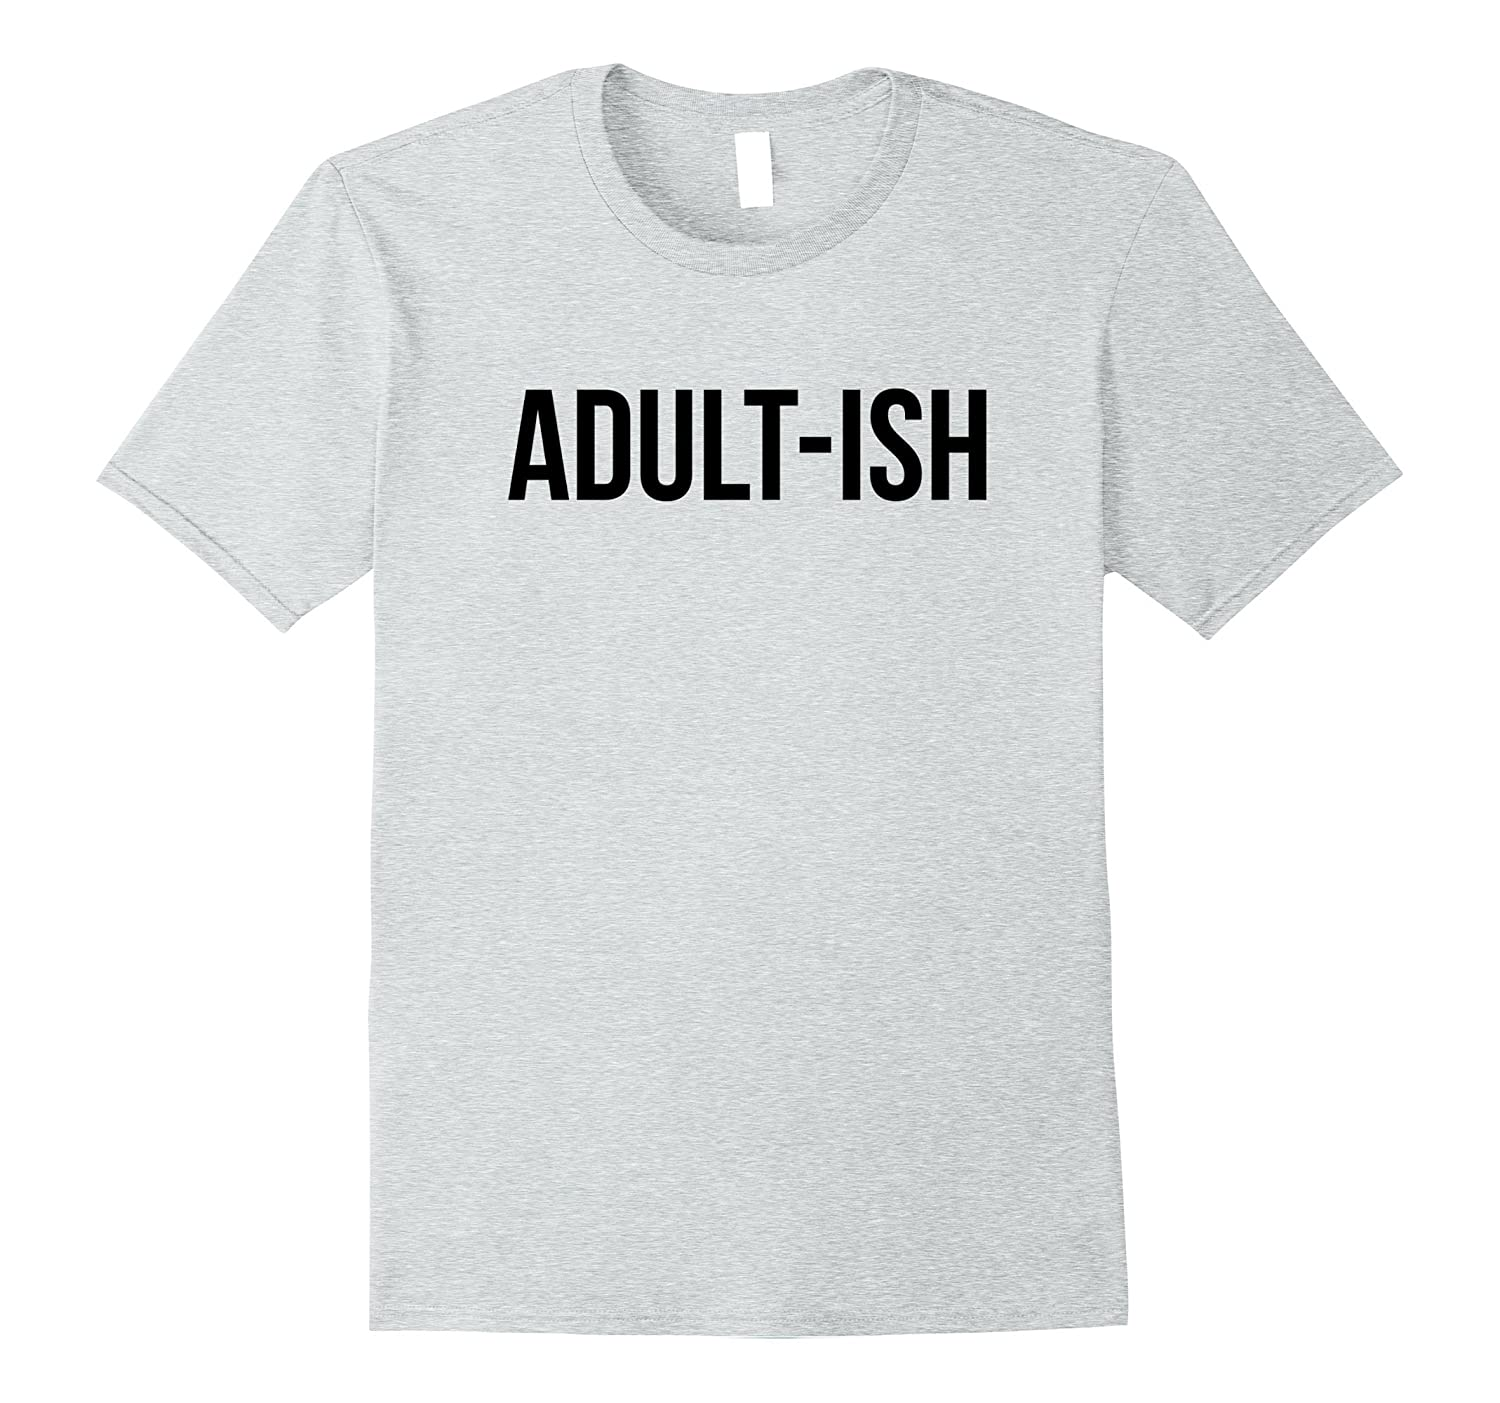 Adult-ish shirt Funny adultish Grown up-T-Shirt